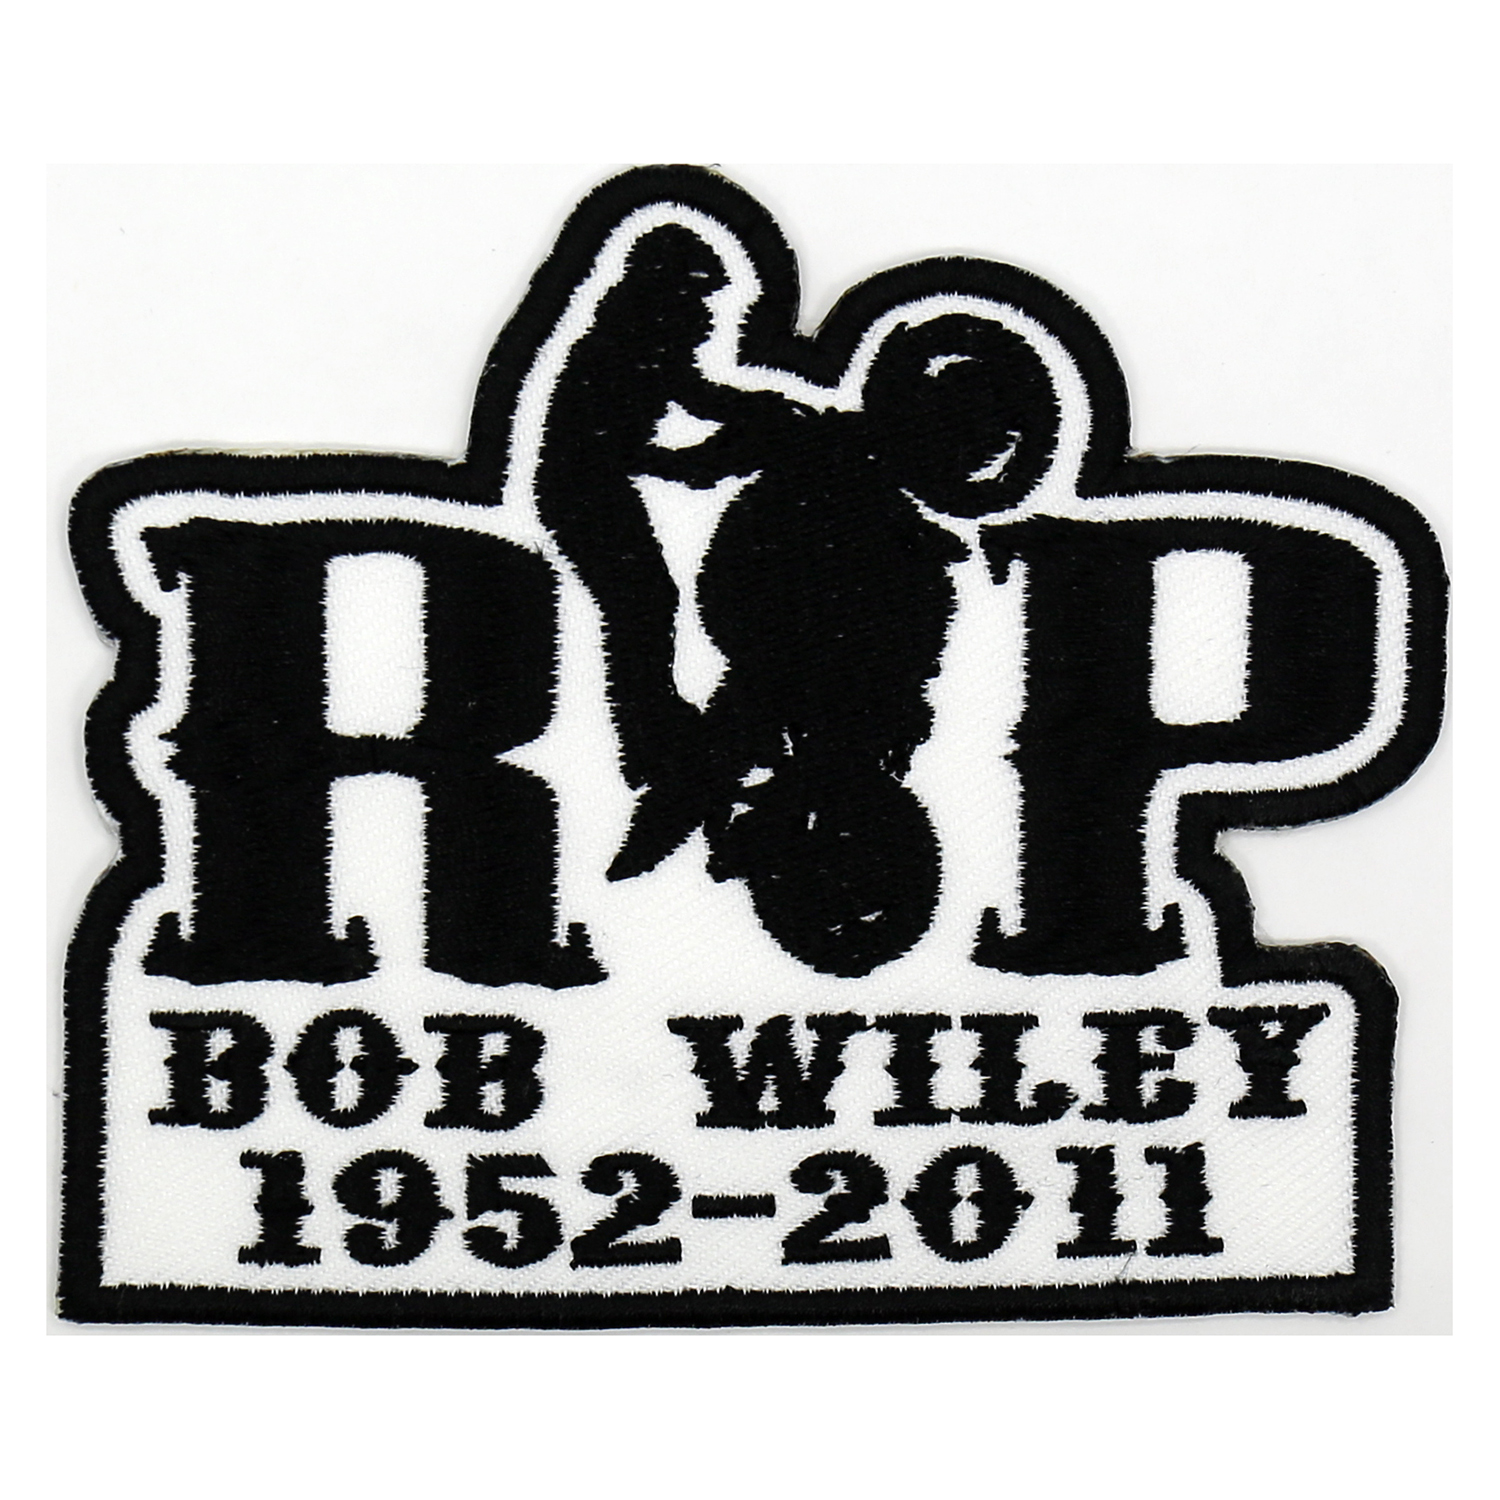 RIP Custom Memorial Biker Vest Embroidery Patch